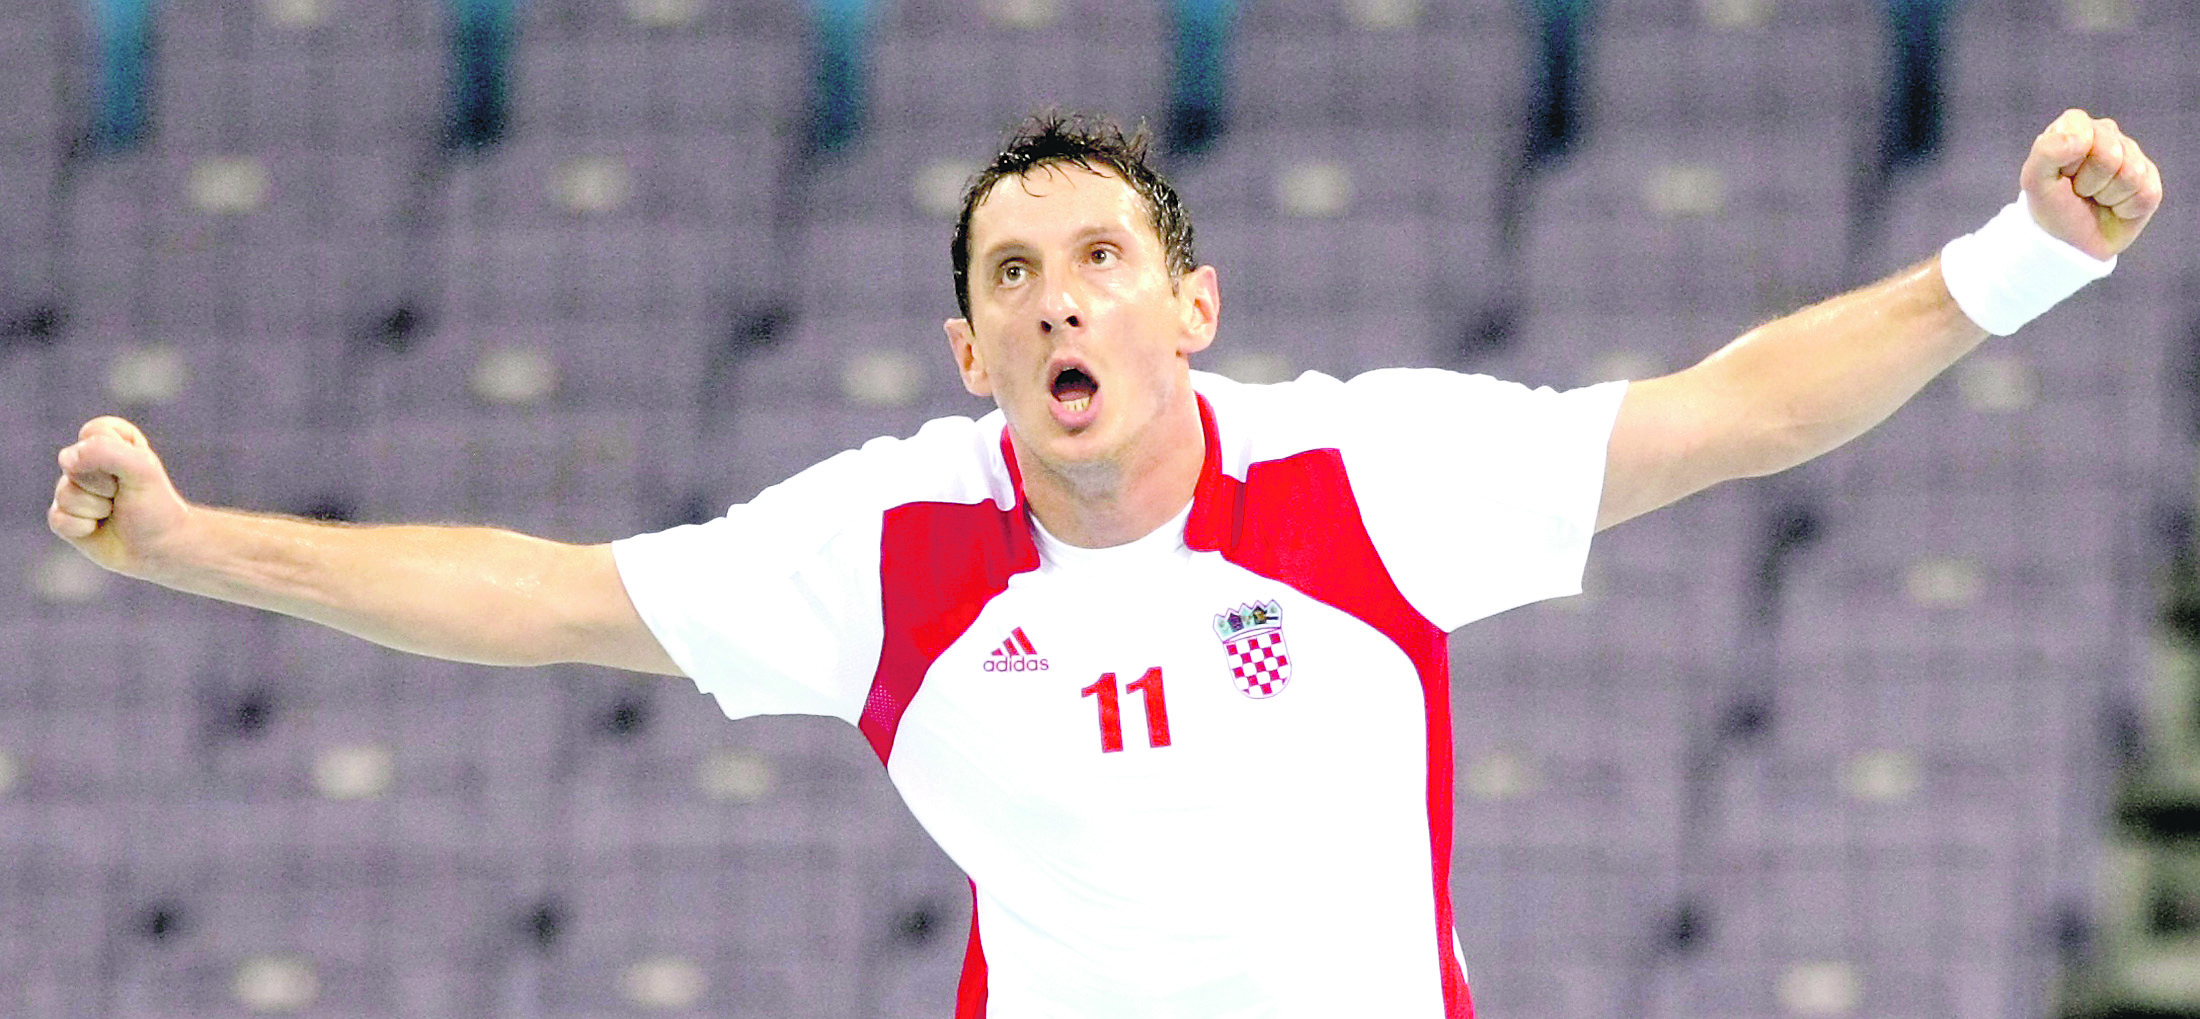 Mirza Dzomba of Croatia celebrates after scoring during their Group A men's handball game against Brazil at the Beijing 2008 Olympic Games August 12, 2008.     REUTERS/Sergio Moraes (CHINA)